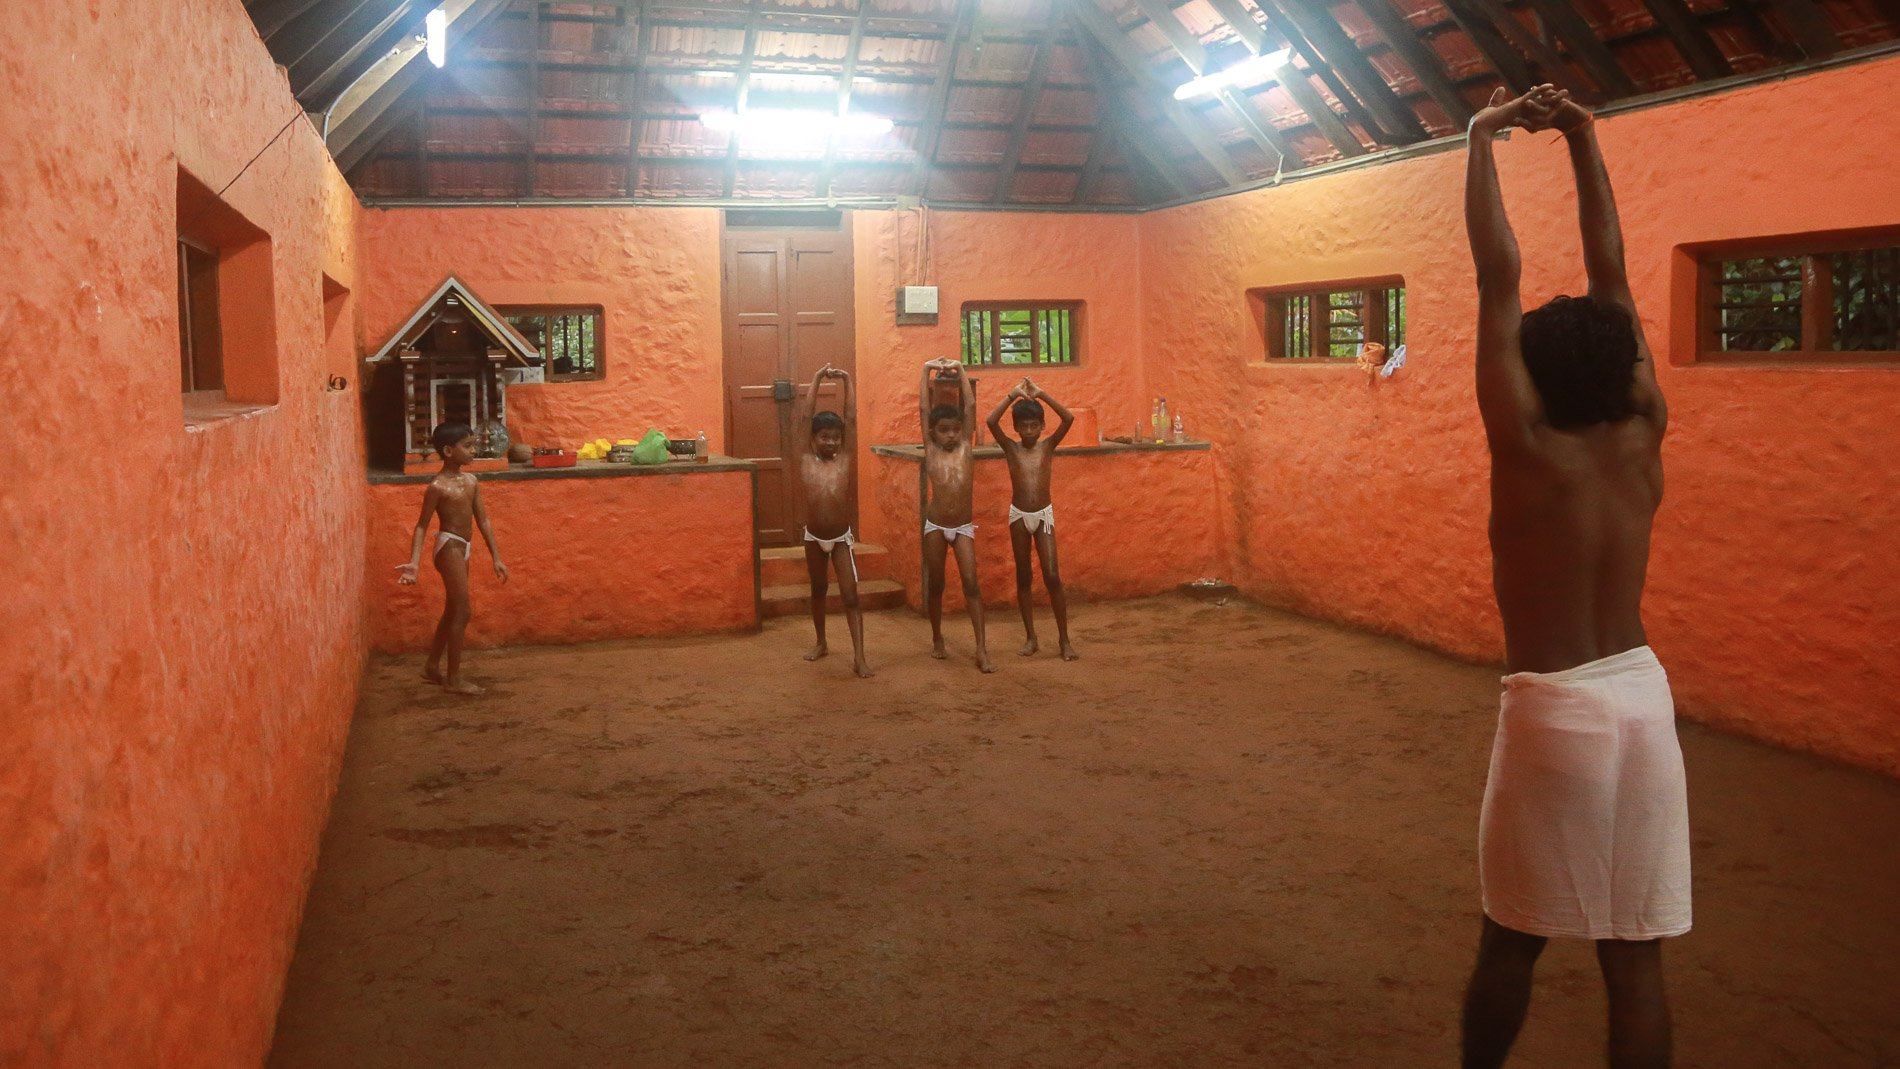 Kalaripayattu training starting with straight swings.